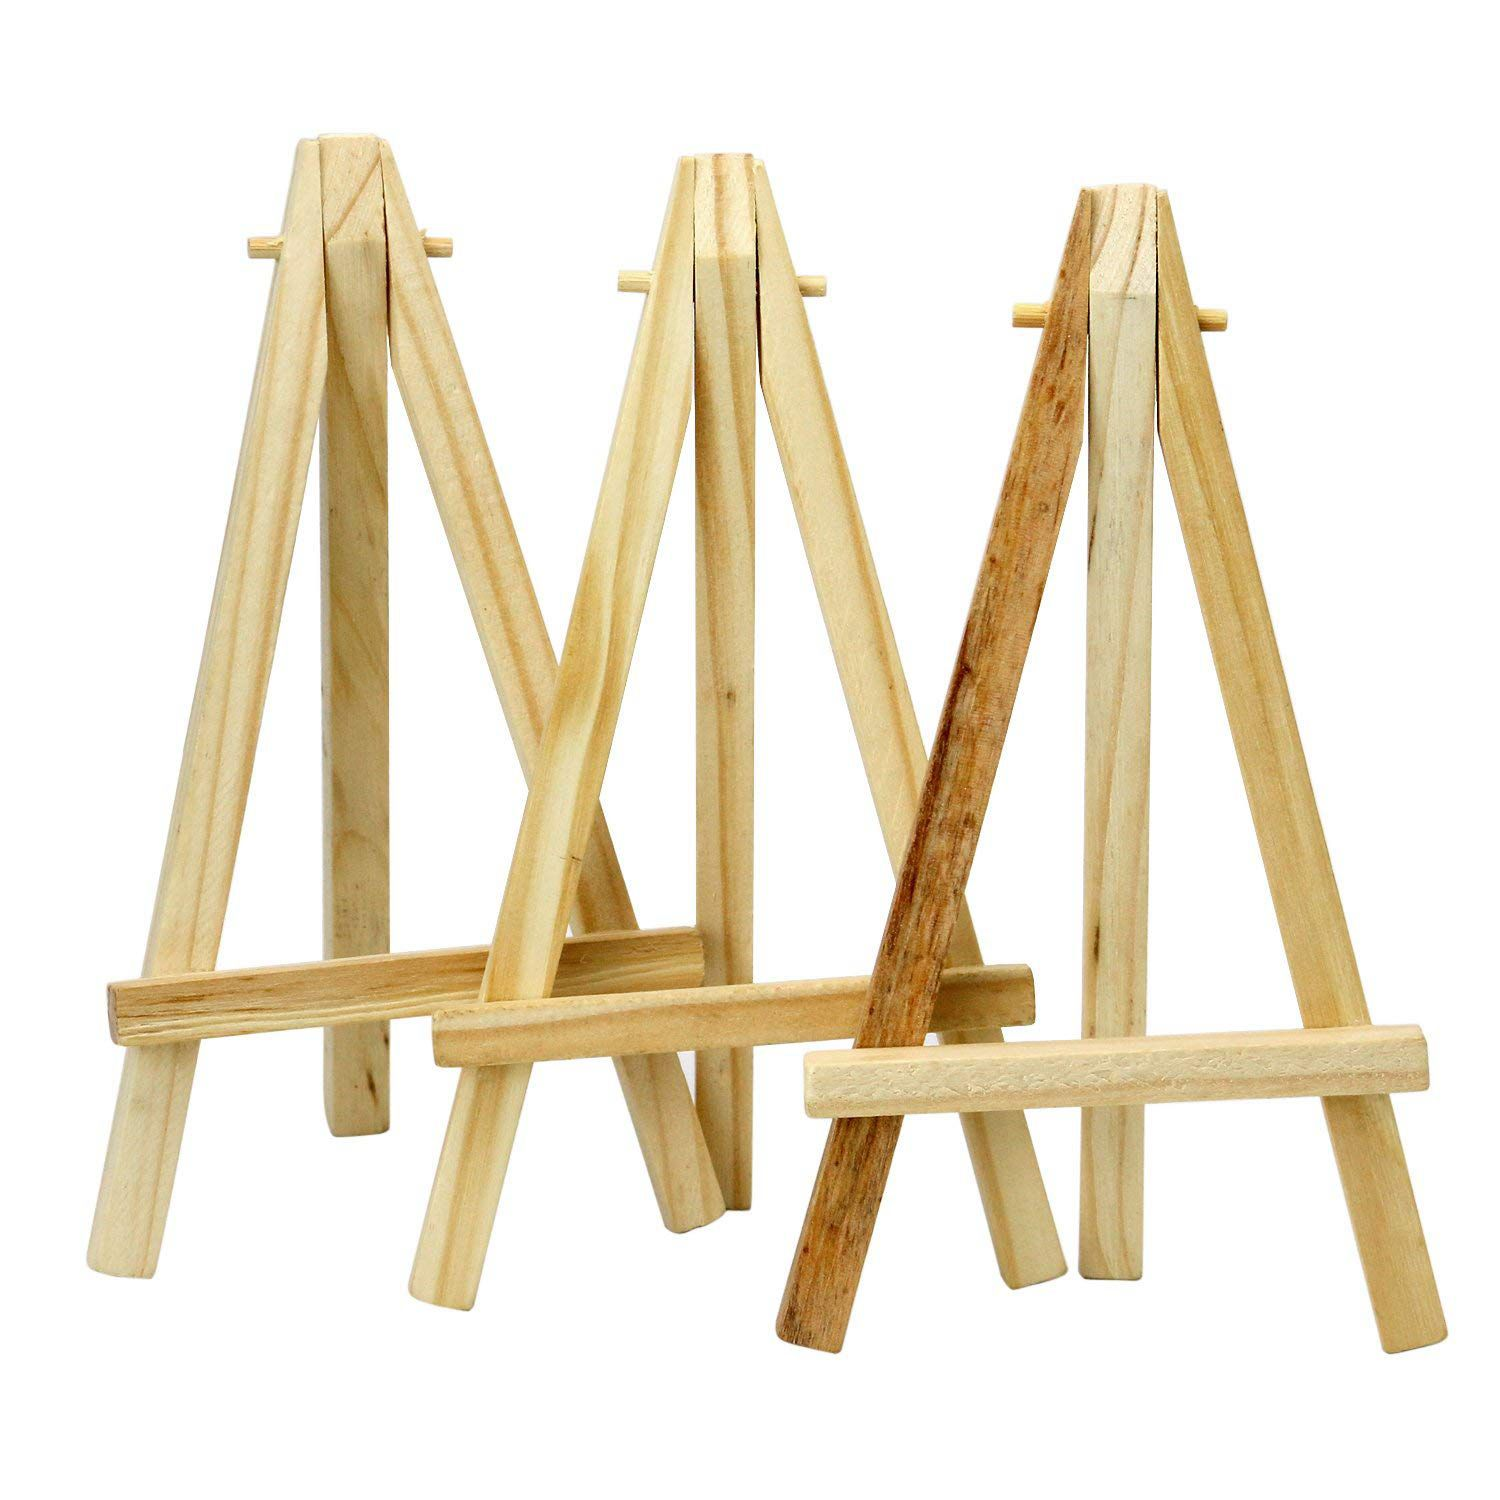 Le Meilleur New Mini 6 Inch Tall Wooden Easels Artistic Projects Photo Ce Mois Ci